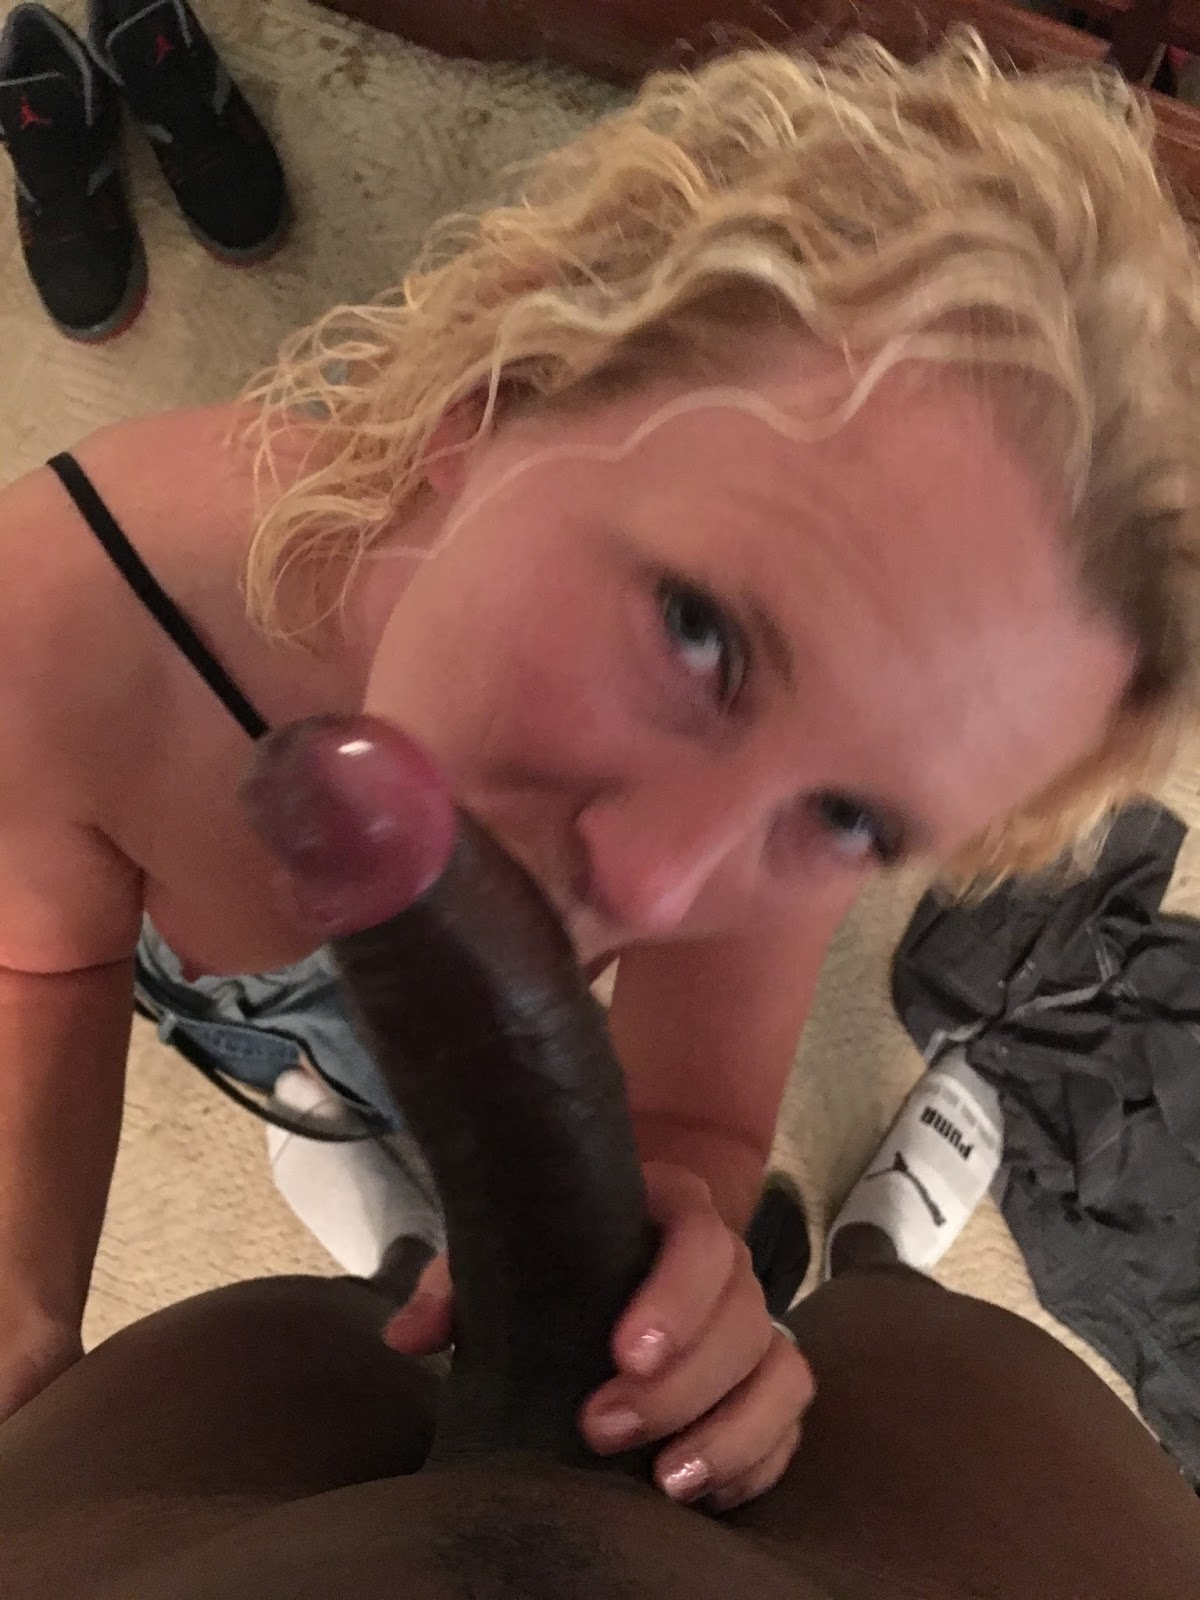 Hotwife leaks over bbc for leaked private snapchat to hubby 8